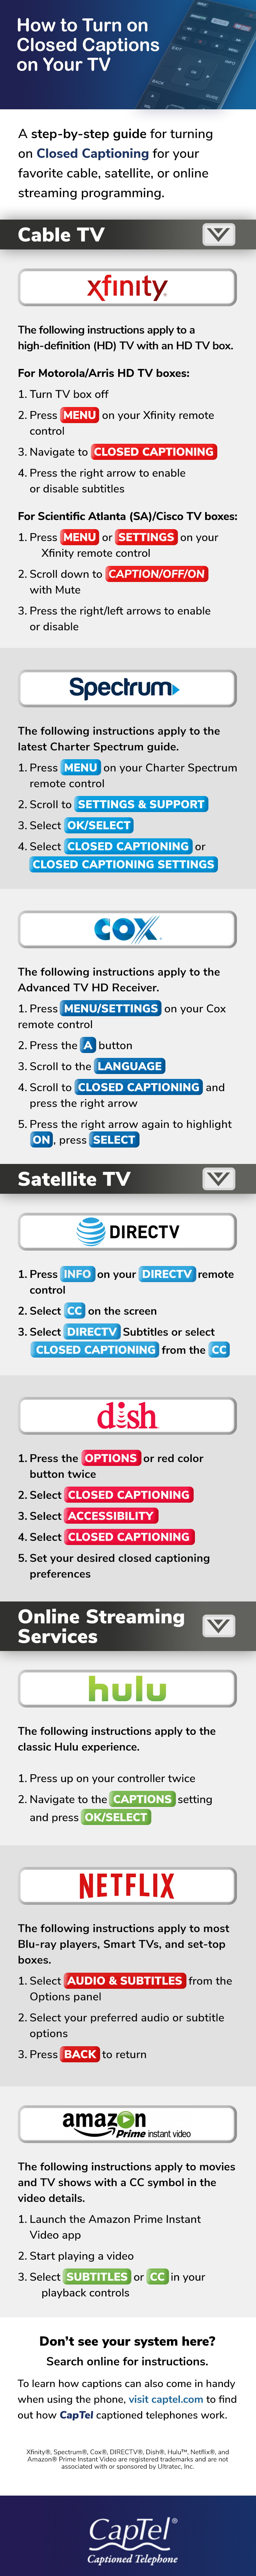 How To Turn On Closed Captions On Your Tv Infographic